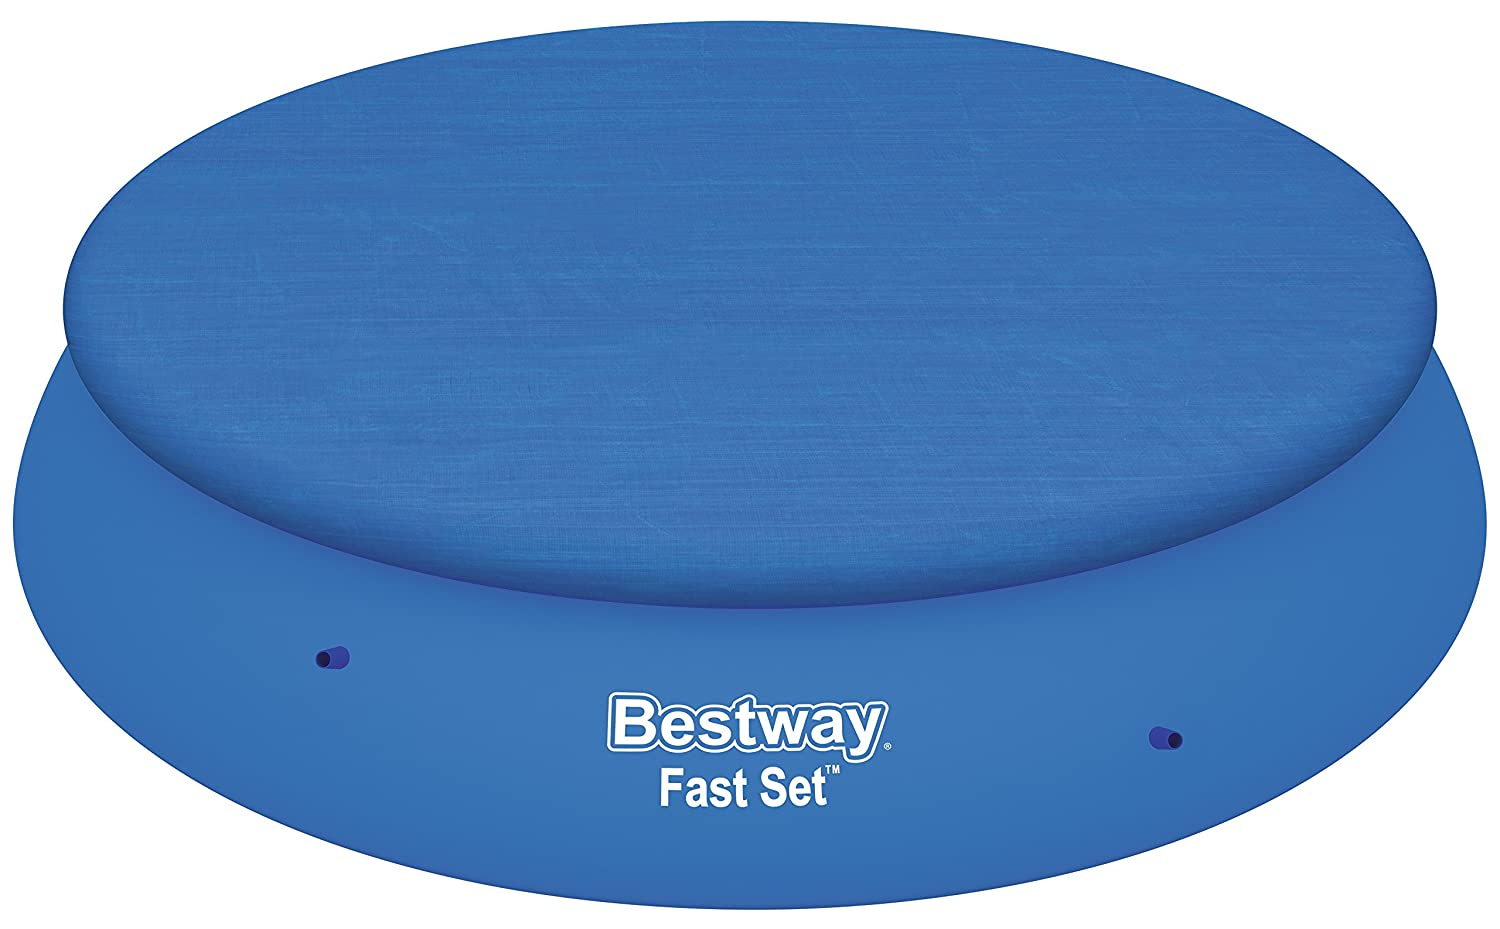 Bestway 58415 Bâche de Protection pour Piscine Fast Set Ronde, 396 cm 58415-05